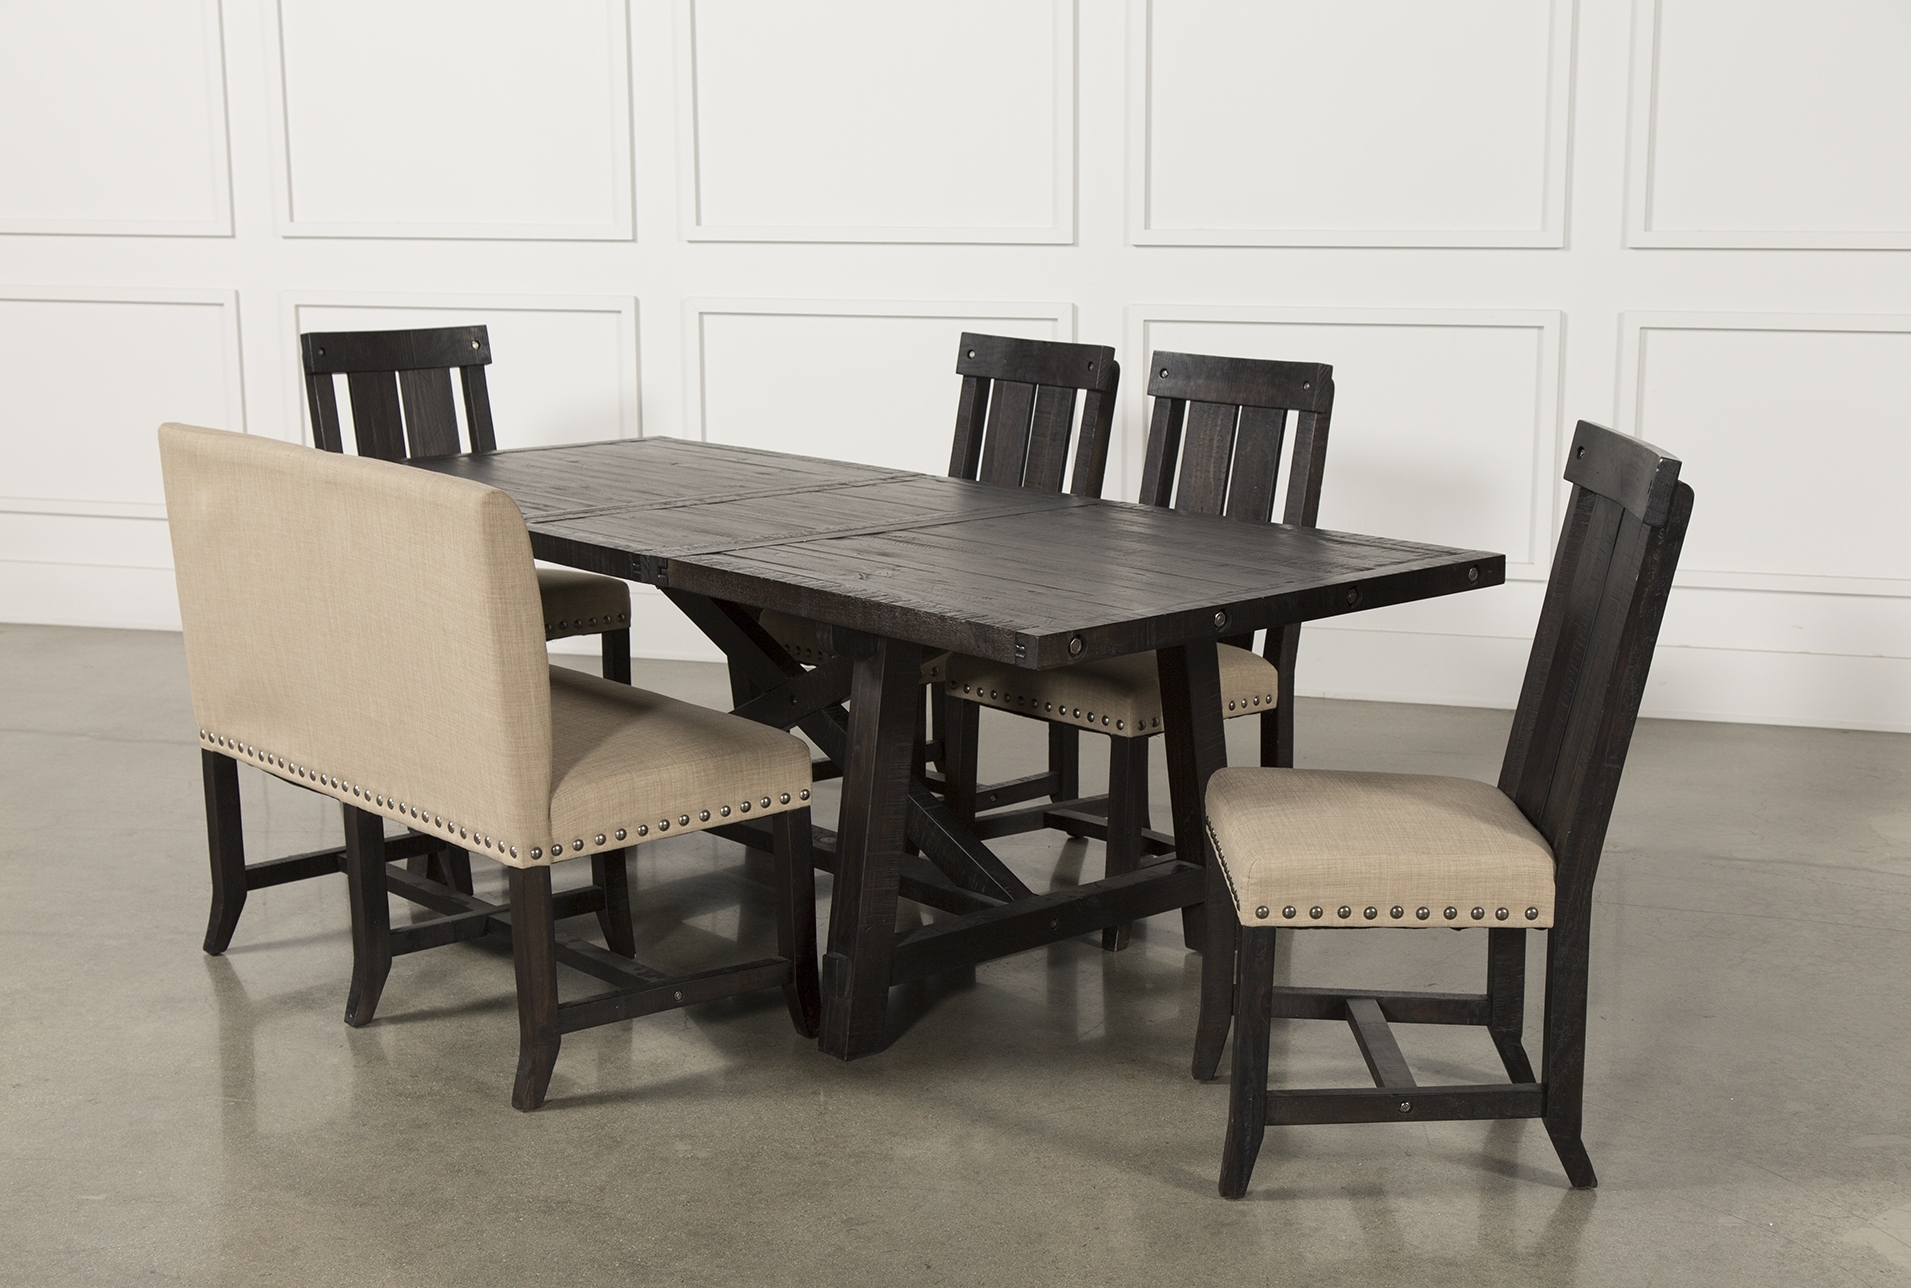 Well Known Jaxon 5 Piece Extension Counter Sets With Wood Stools With Regard To Jaxon 6 Piece Rectangle Dining Set W/bench & Wood Chairs (View 8 of 25)